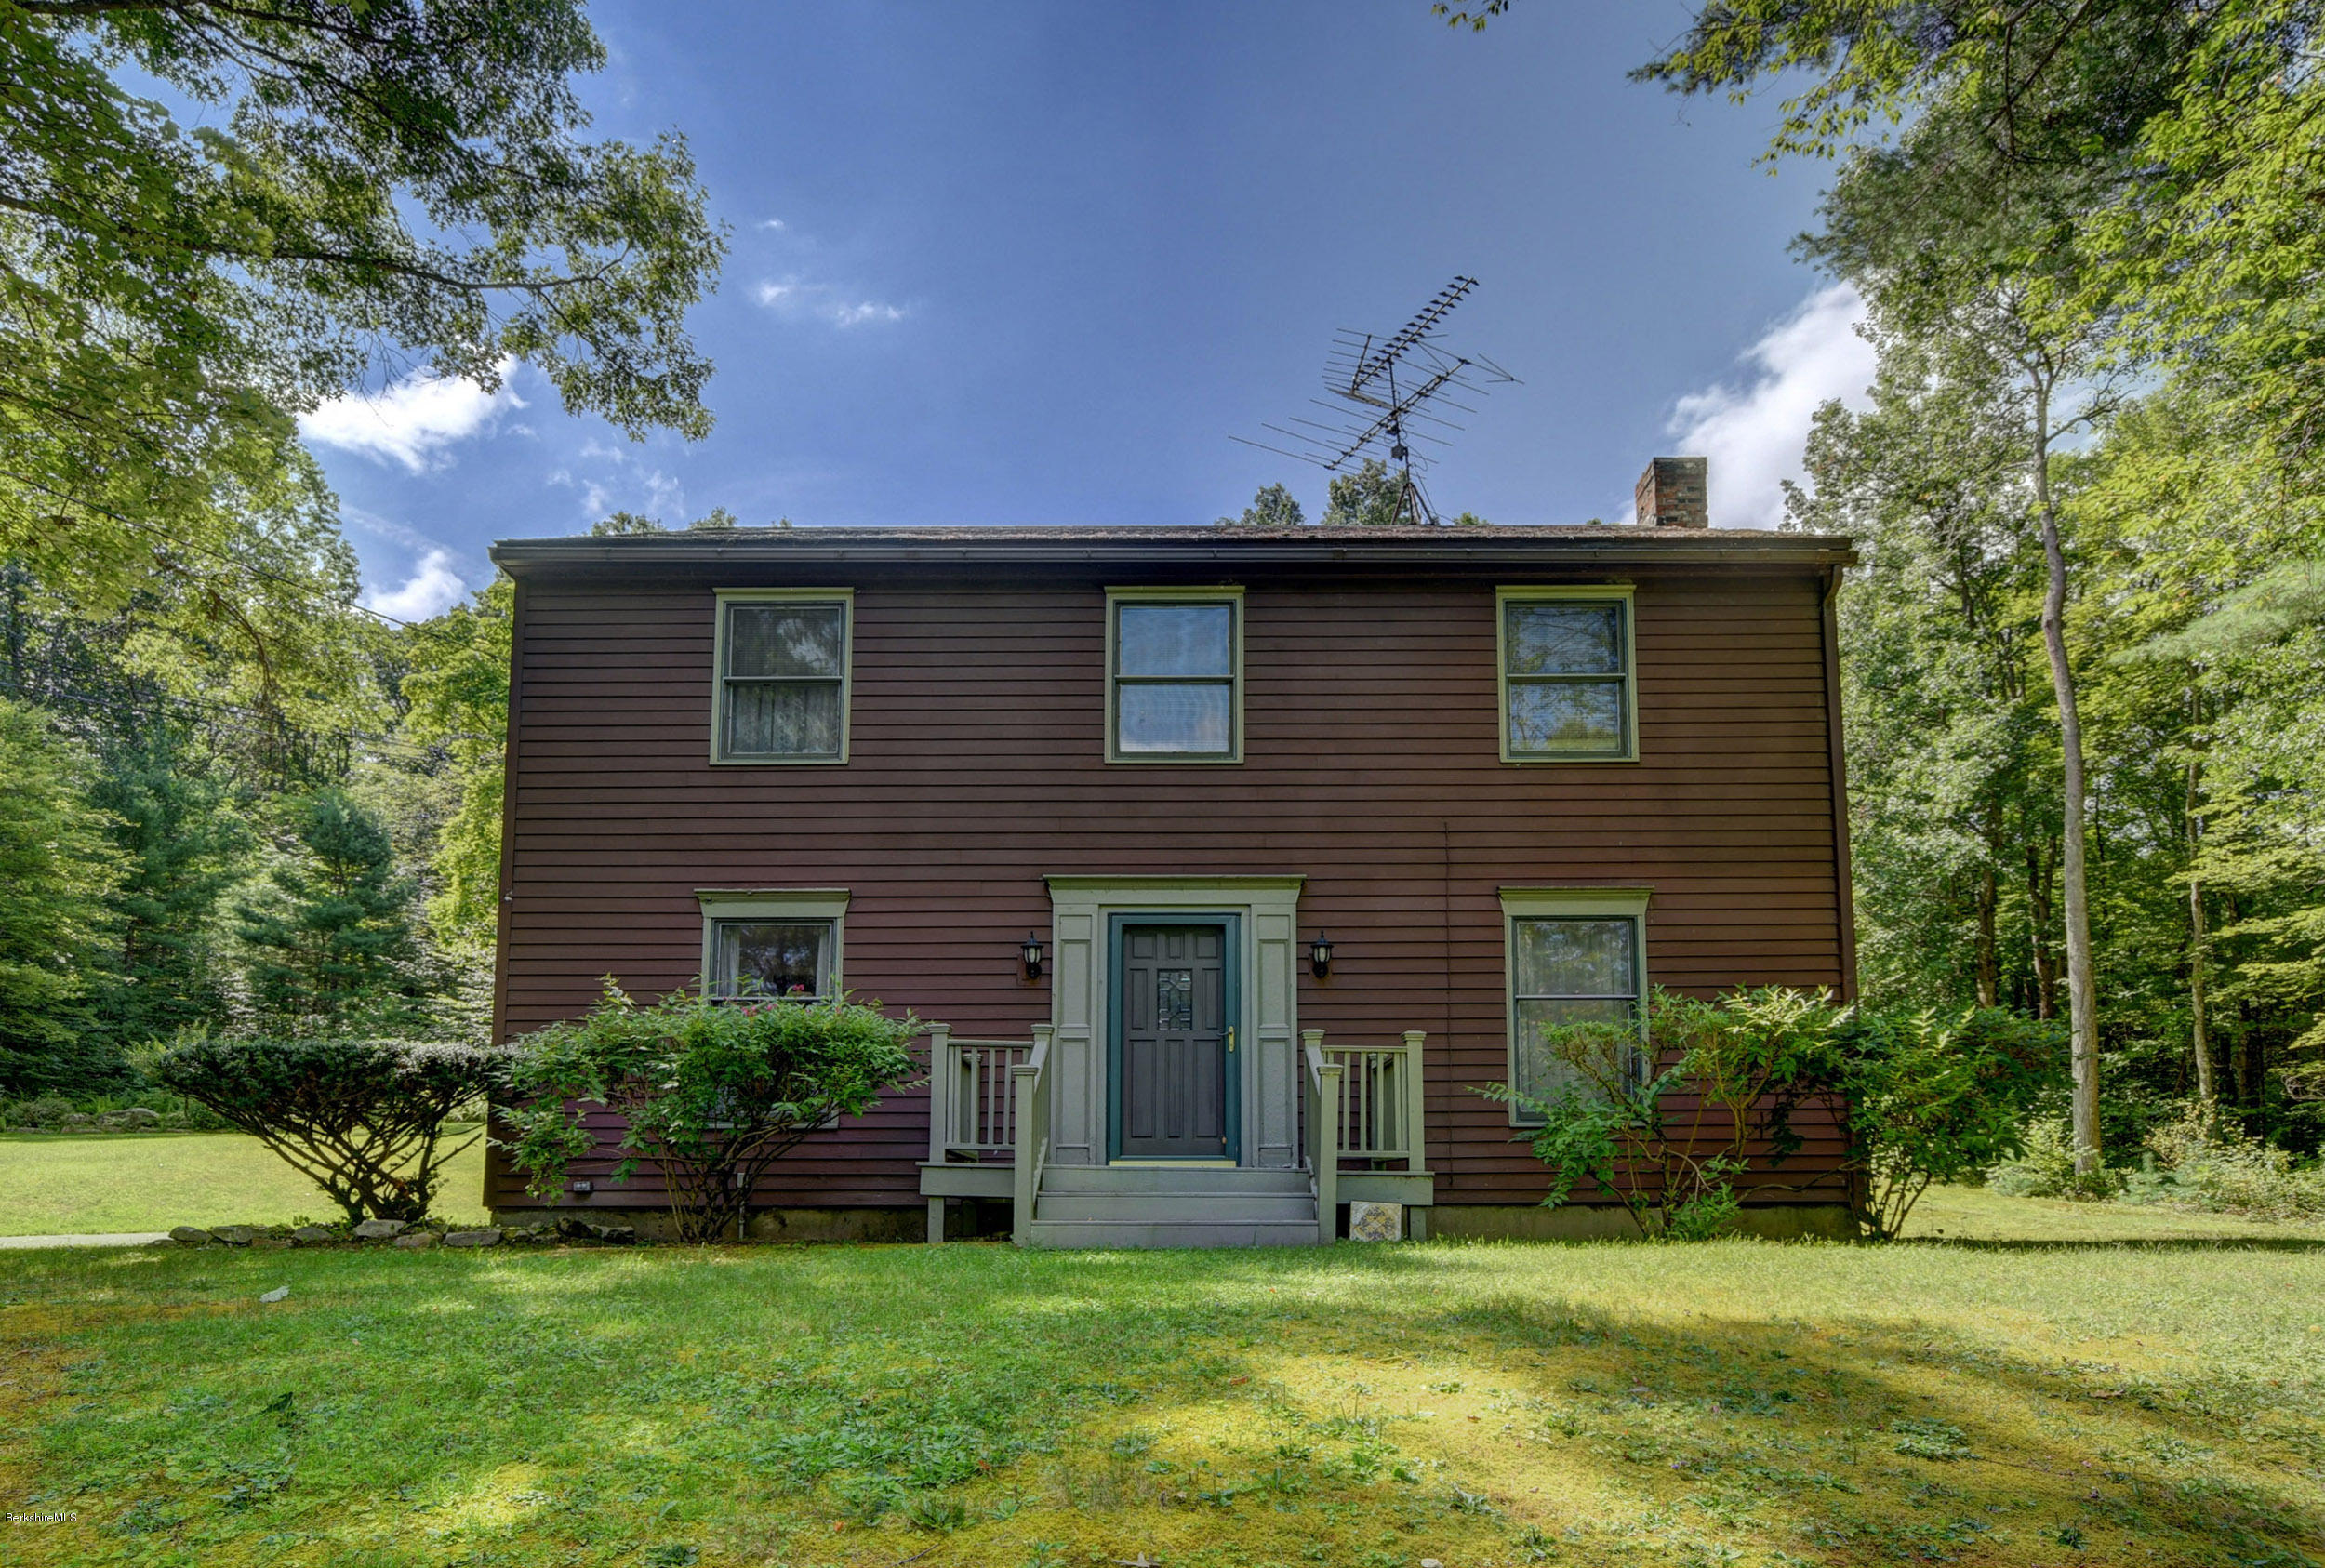 296 Alum Hill, Sheffield, MA 01257